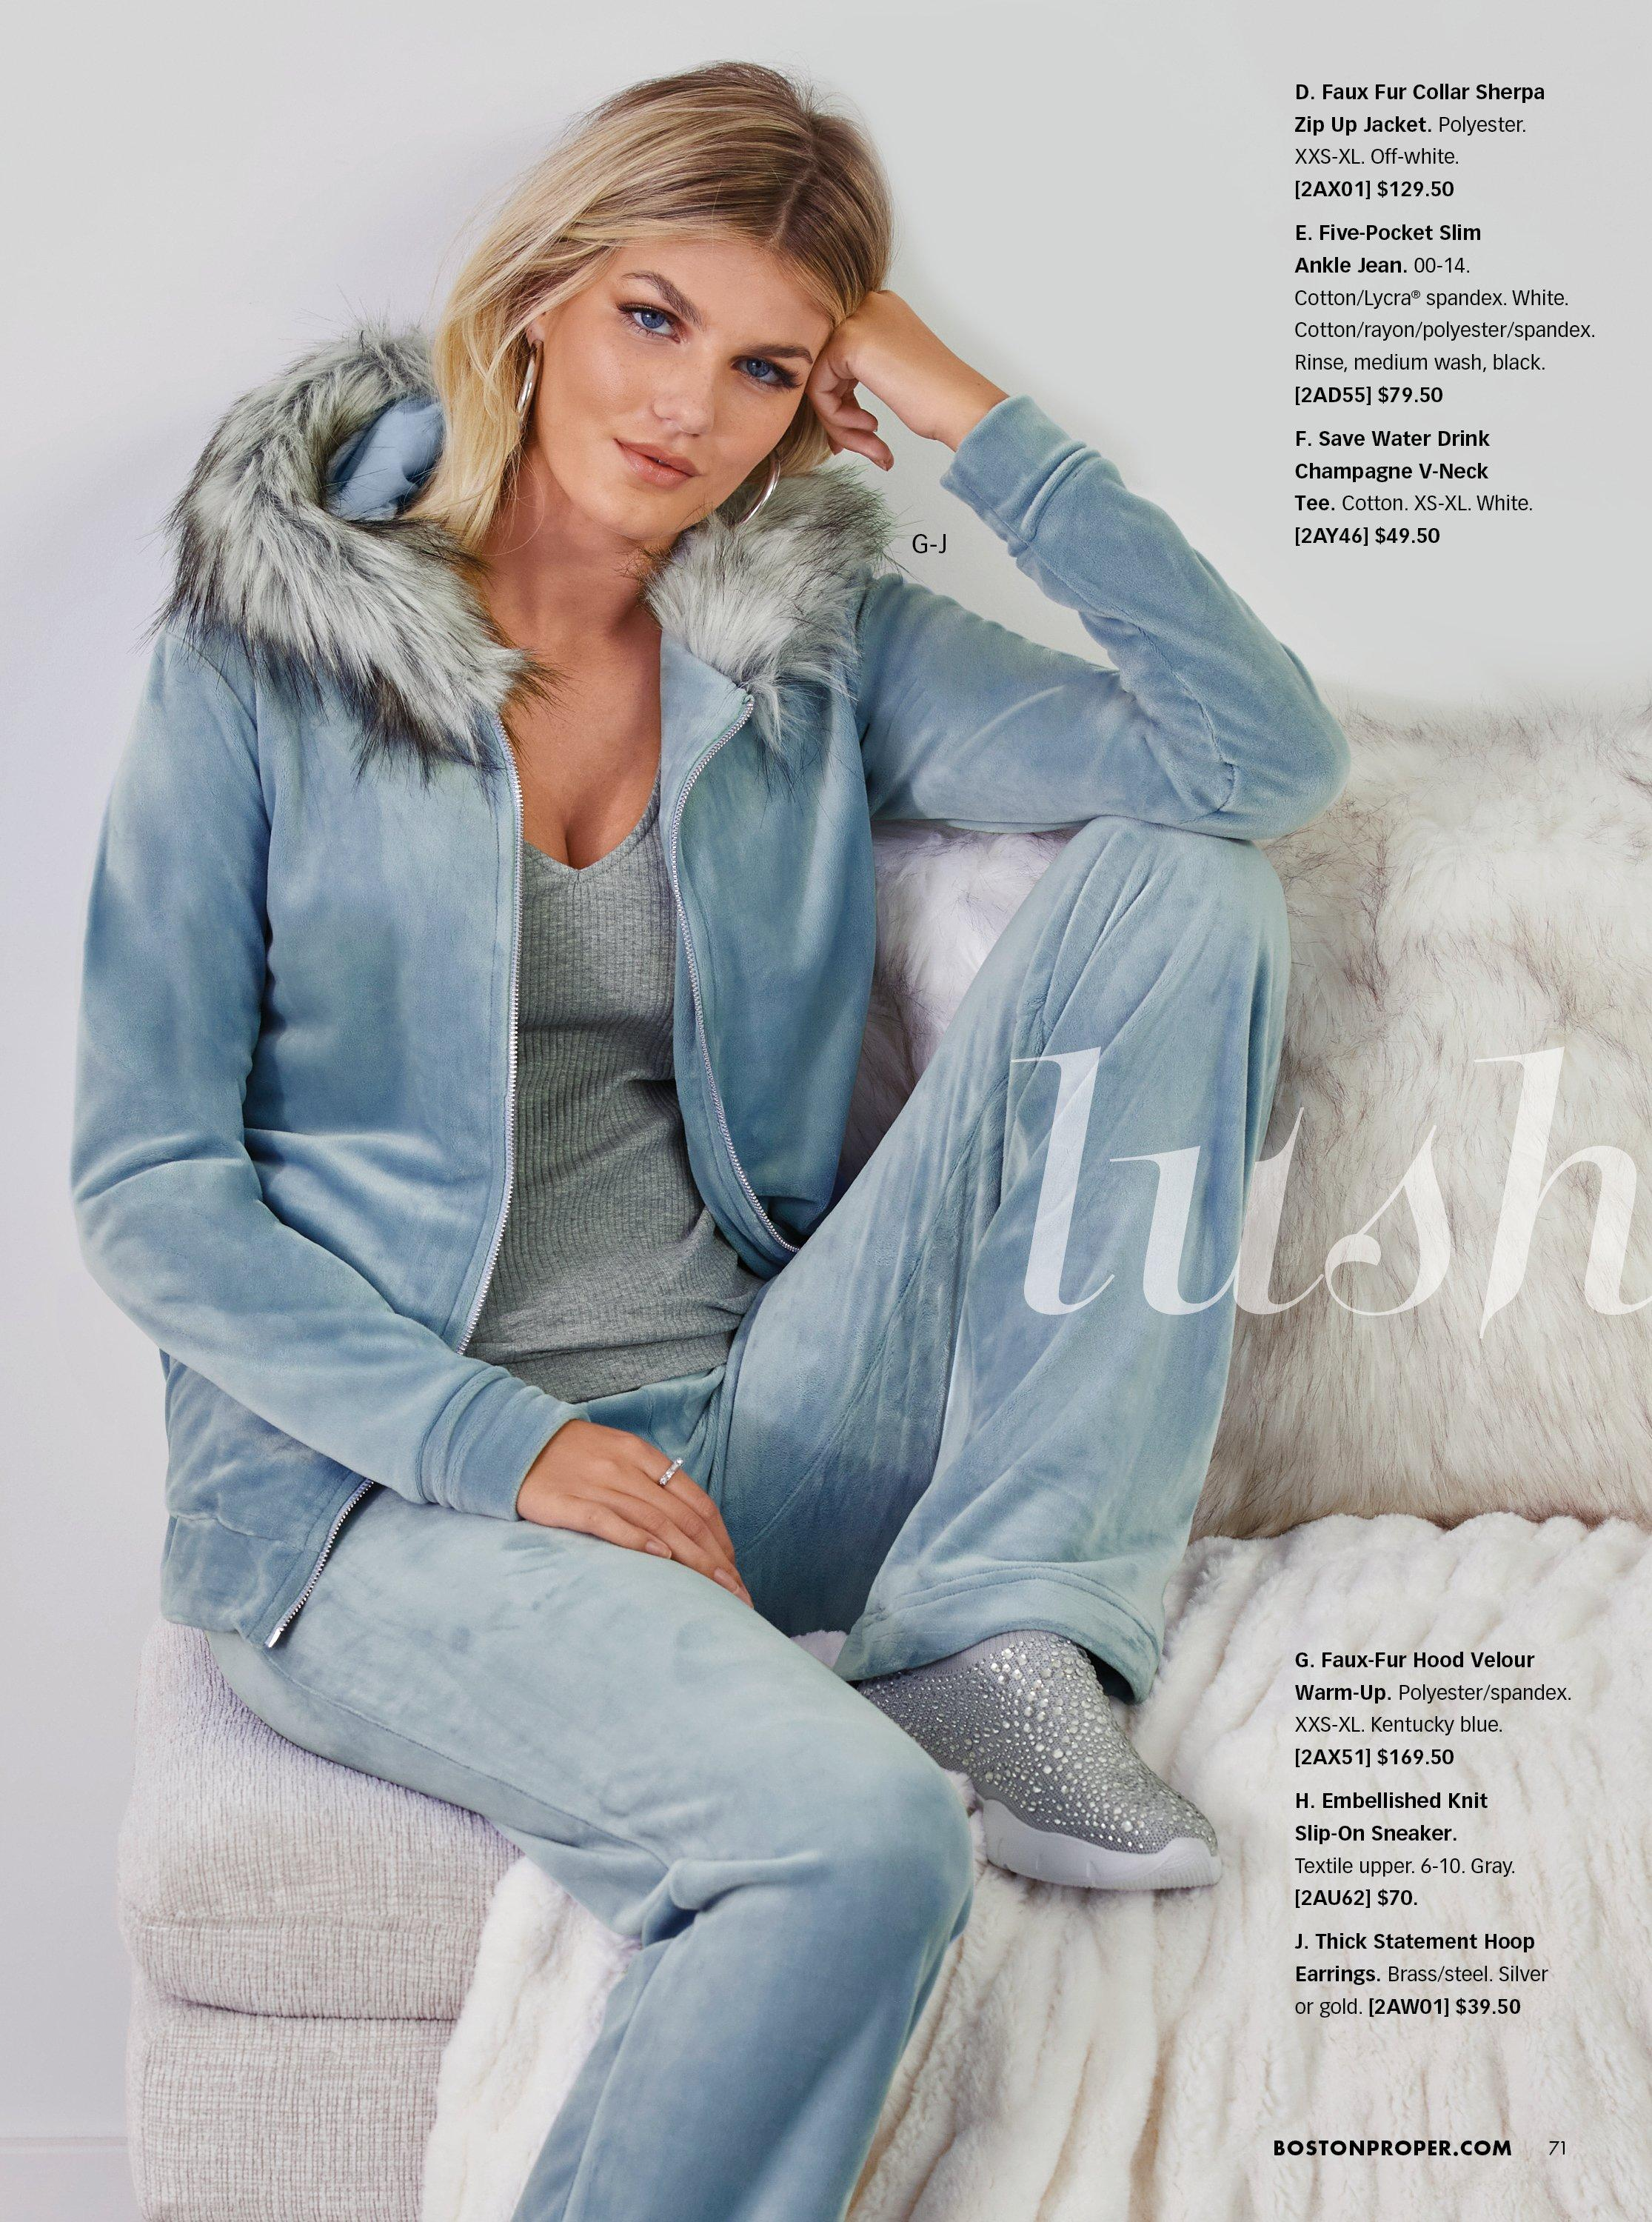 model wearing a light blue velour faux fur two-piece lounge set, gray tank top, and gray rhinestone embellished slip on sneakers.